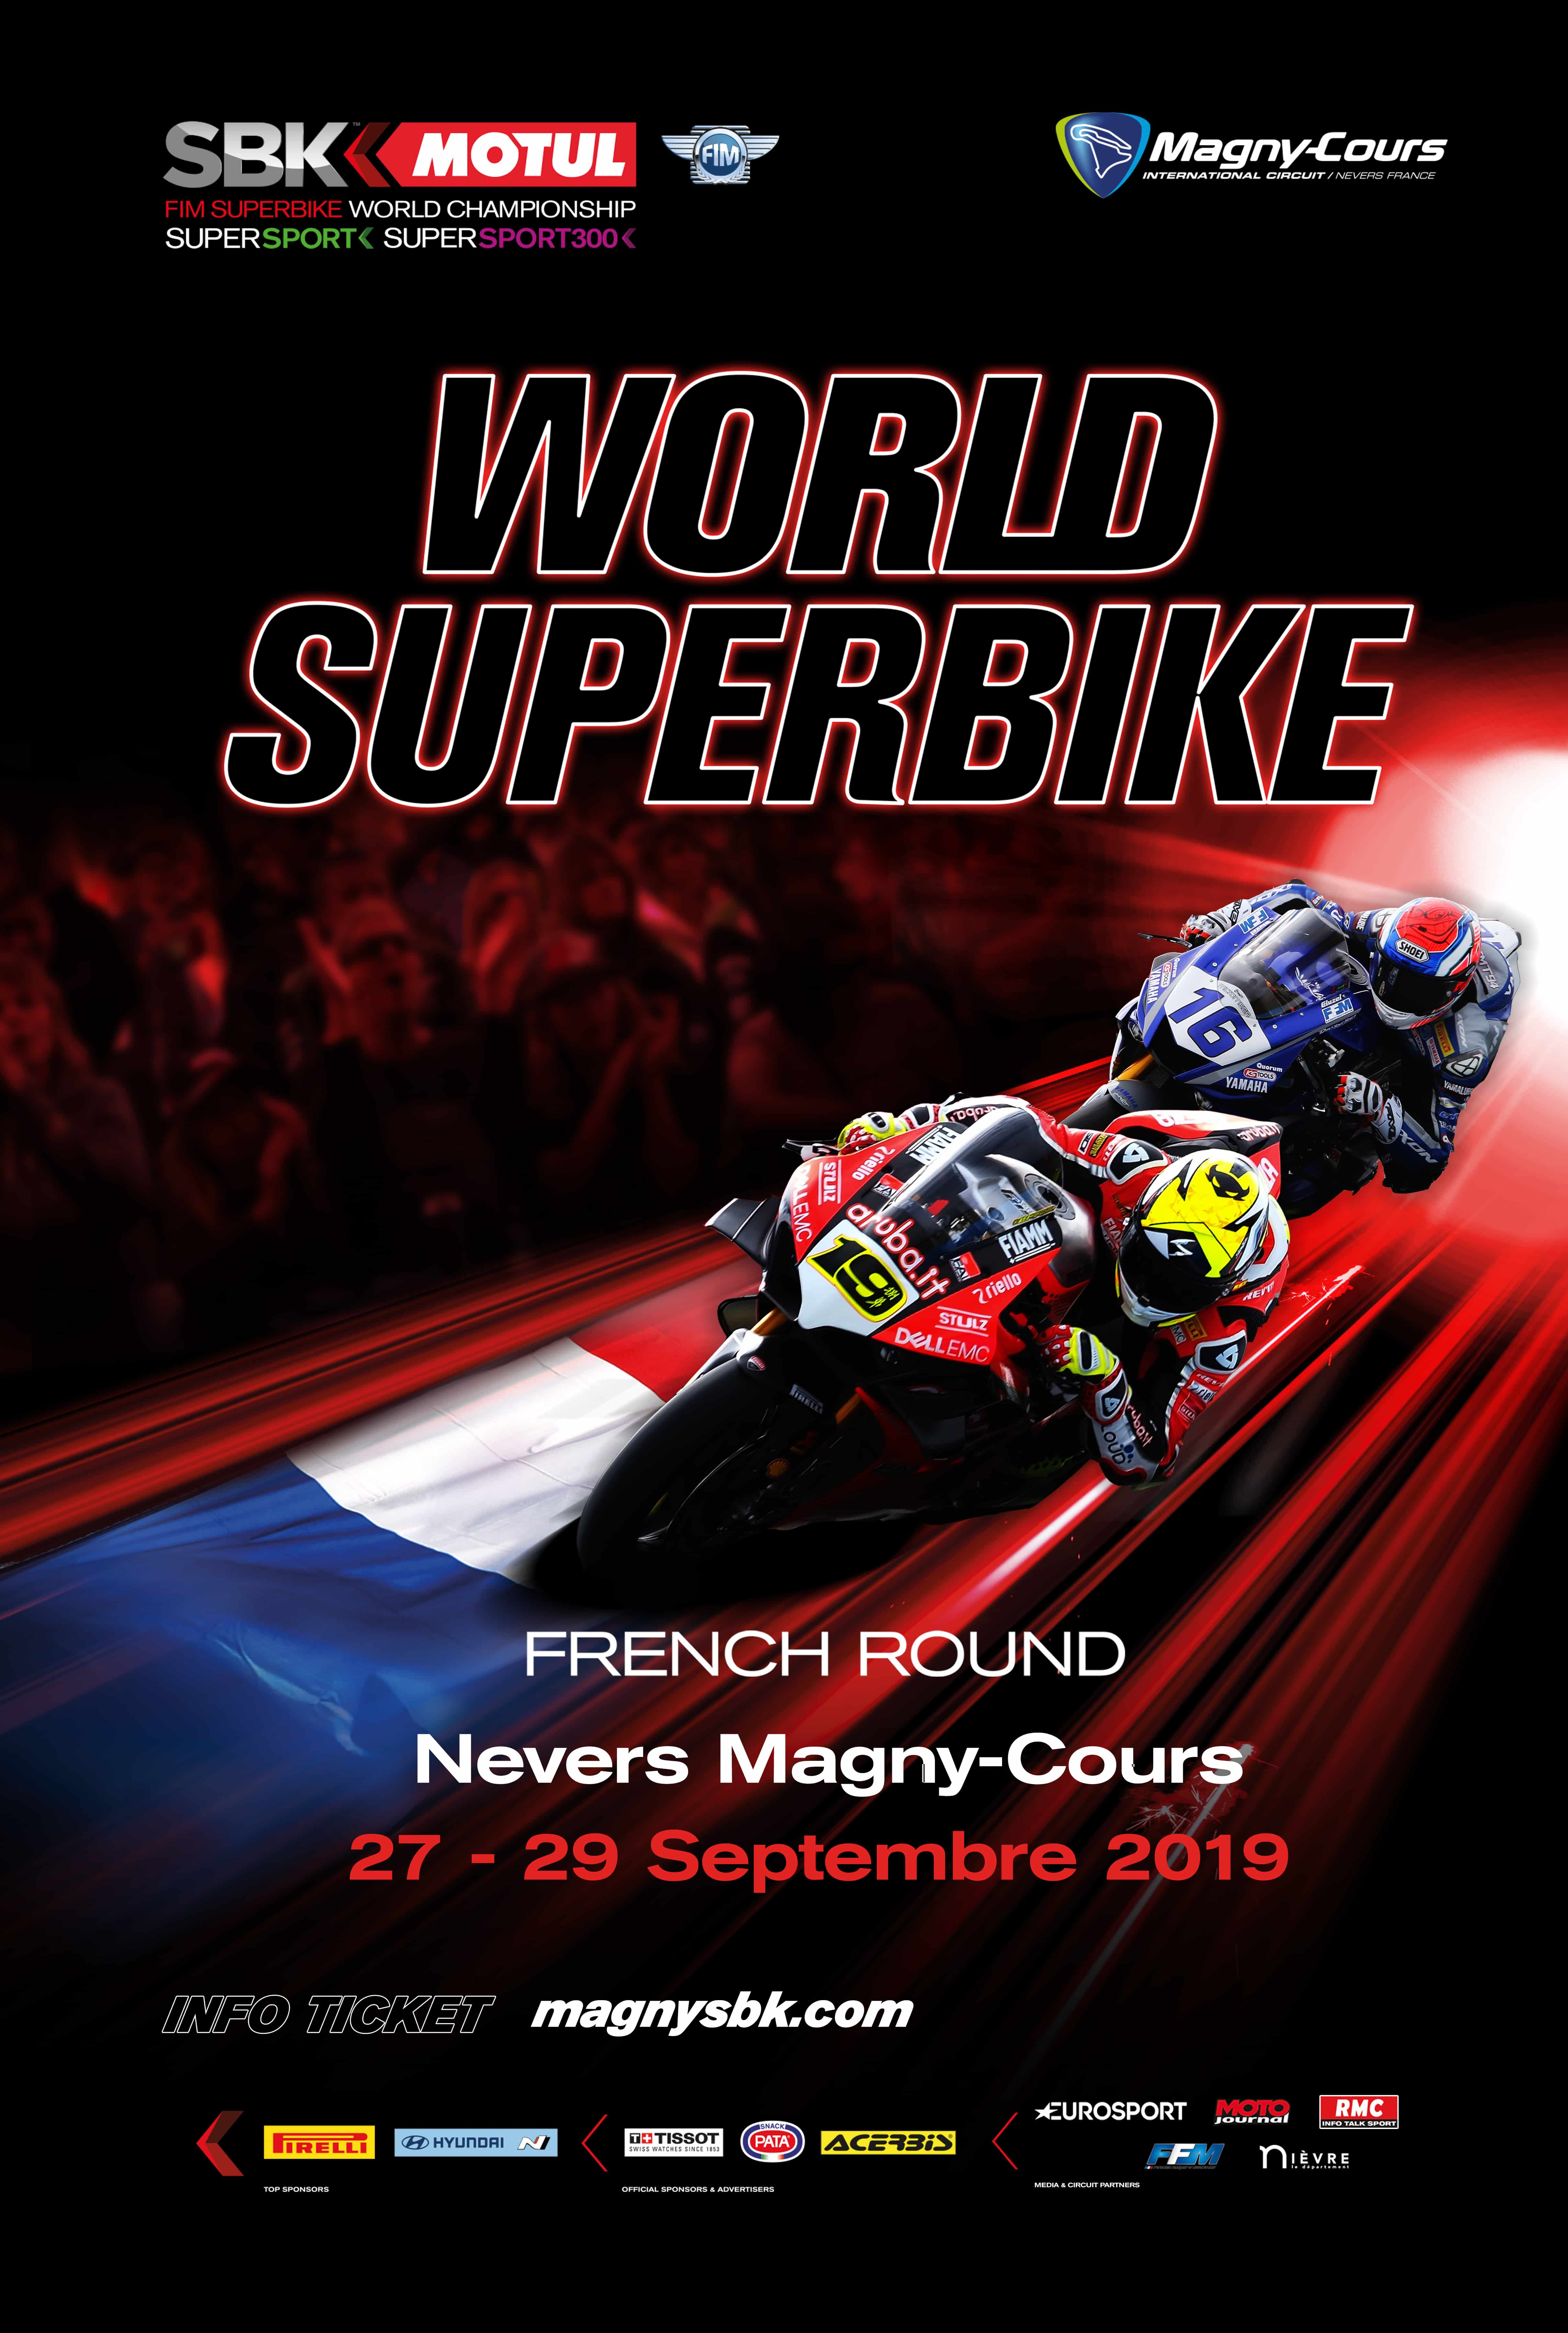 Calendrier Magny Cours 2020.Superbike Sbk Magny Cours 2019 Nevers Championnat Du Monde